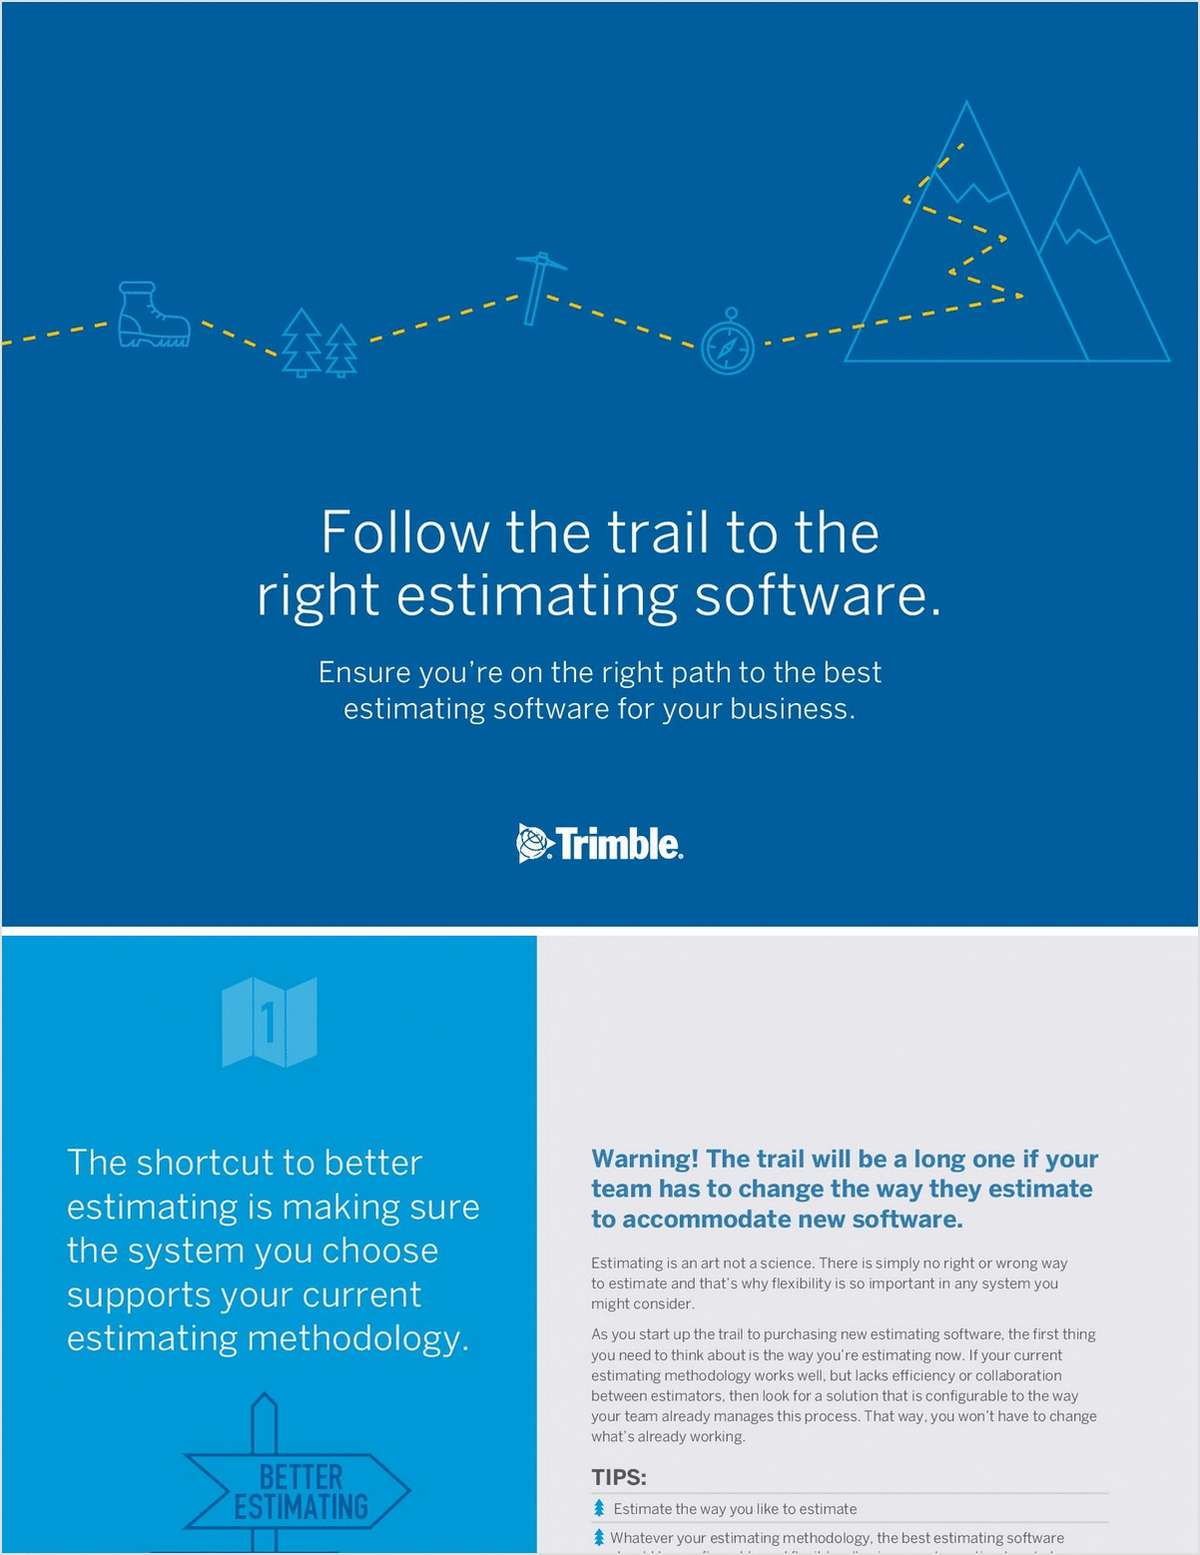 Follow the Trail to the Right Estimating Software